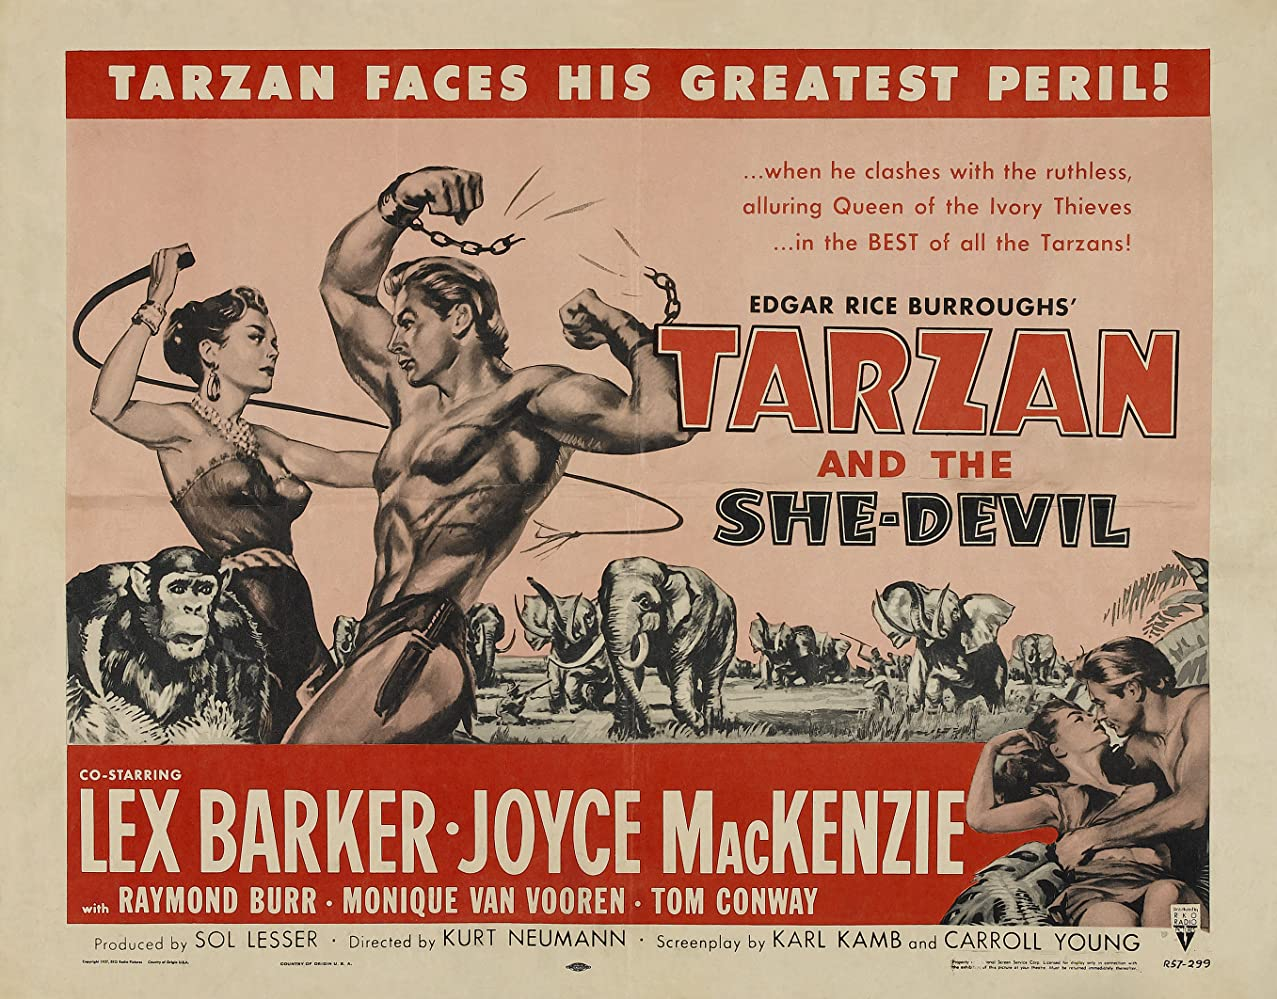 Lex Barker, Joyce Mackenzie, and Monique van Vooren in Tarzan and the She-Devil (1953)